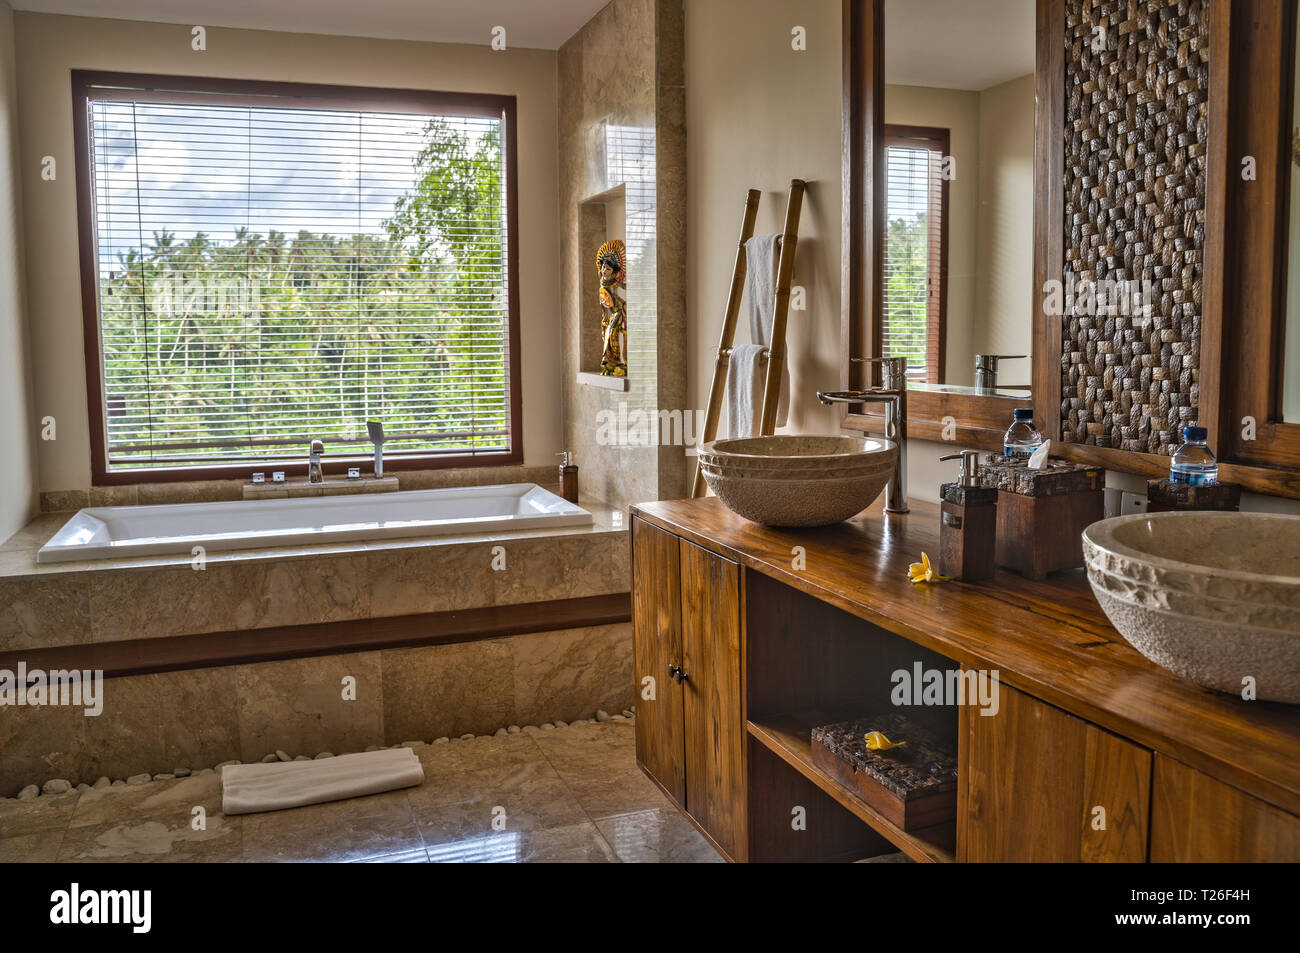 Ubud Bali Indonesia January 2019 Luxury Hotel Bathroom Interior With Elements Of Traditional Balinese Design Stock Photo Alamy